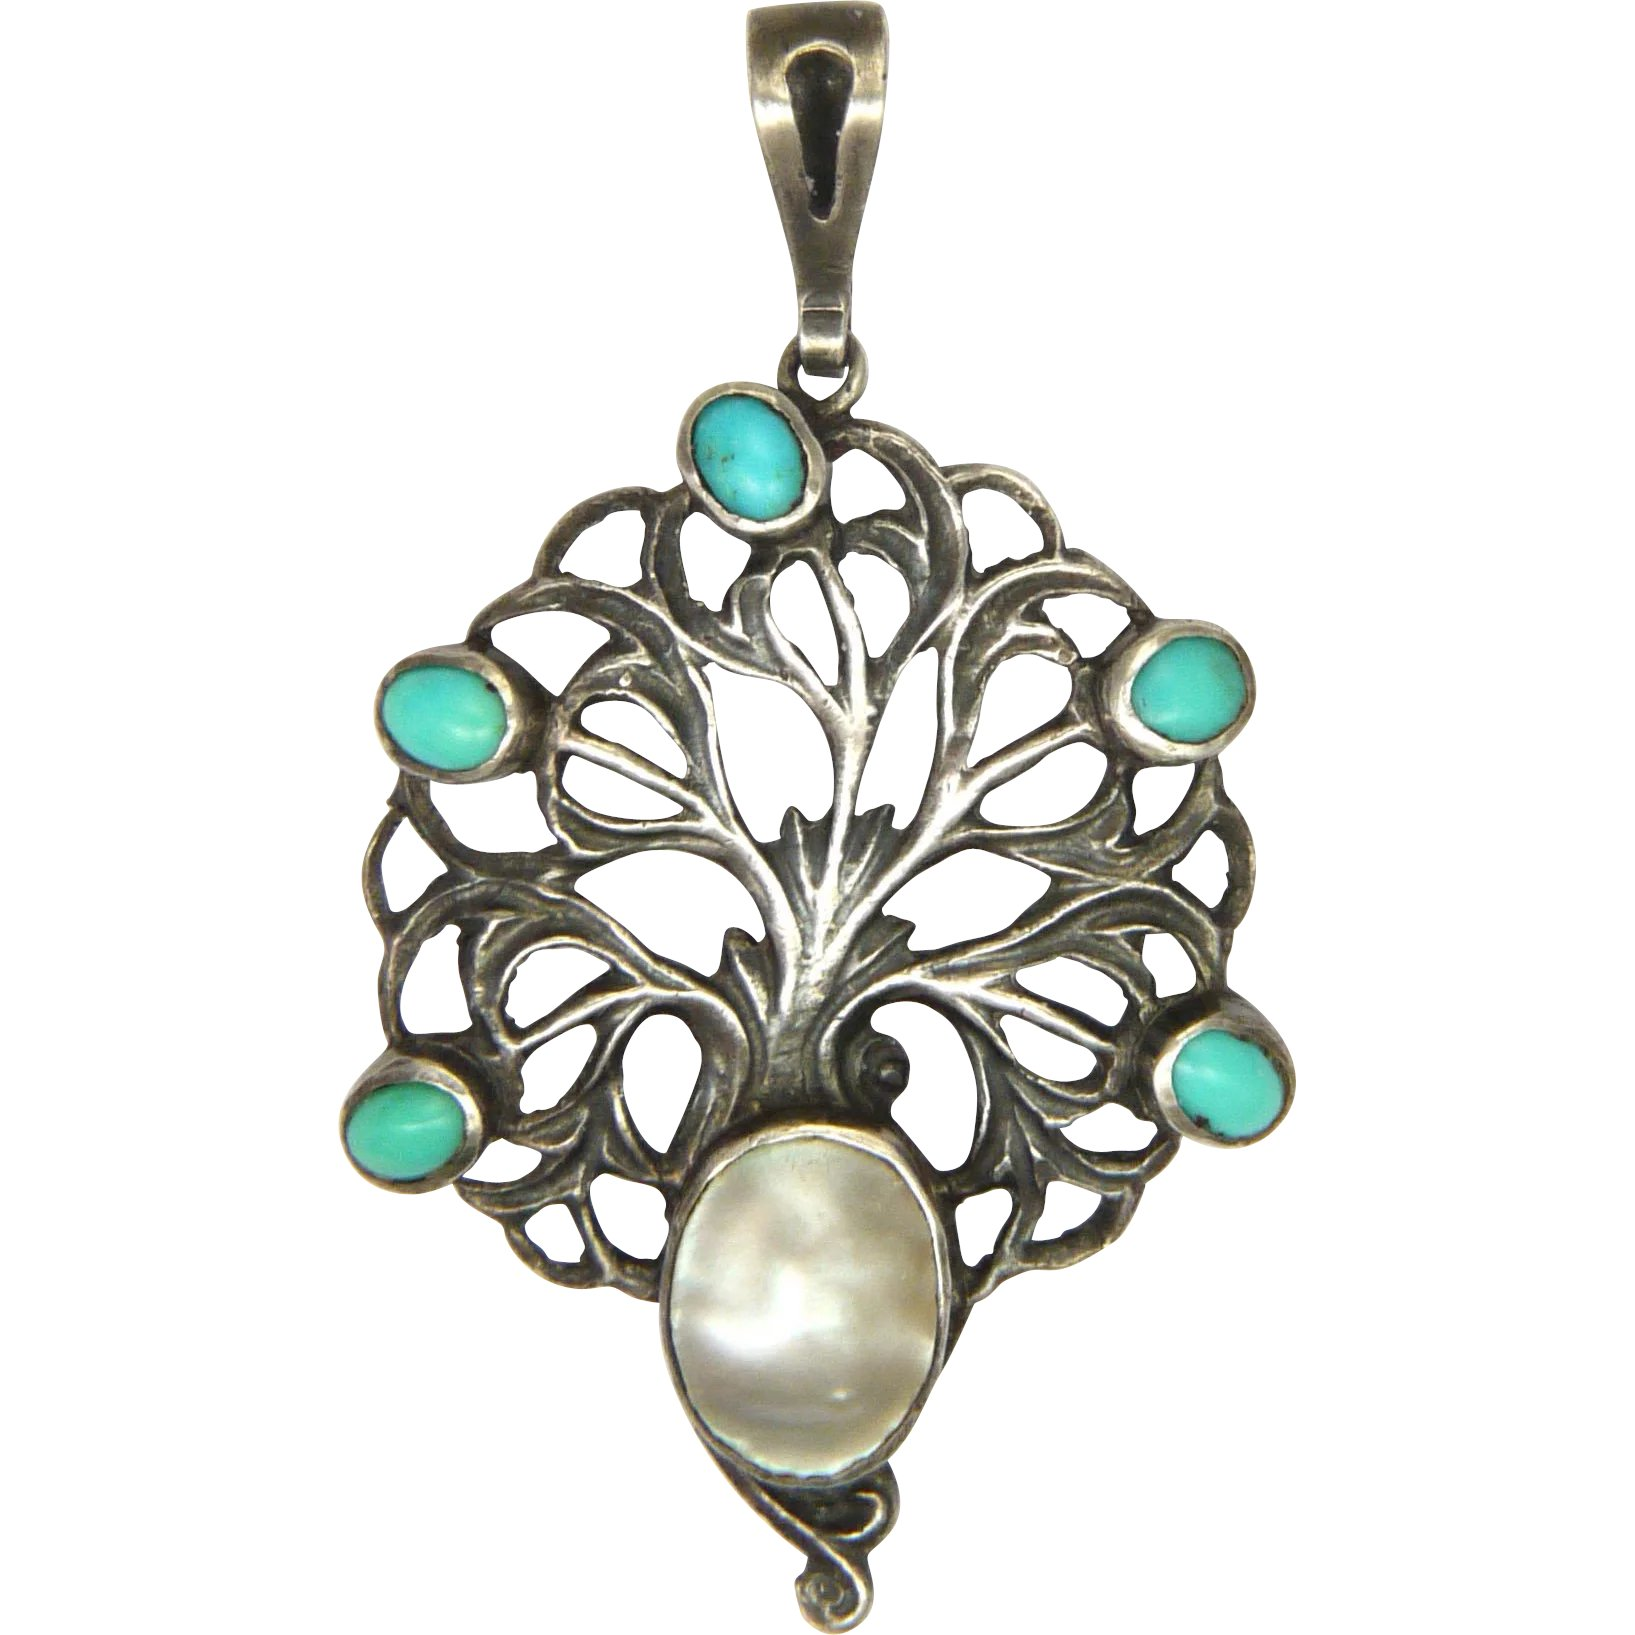 5b2c0adc1 English Arts and Crafts Sterling Turquoise and Pearl Pendant - William :  Suzy Lemay   Ruby Lane